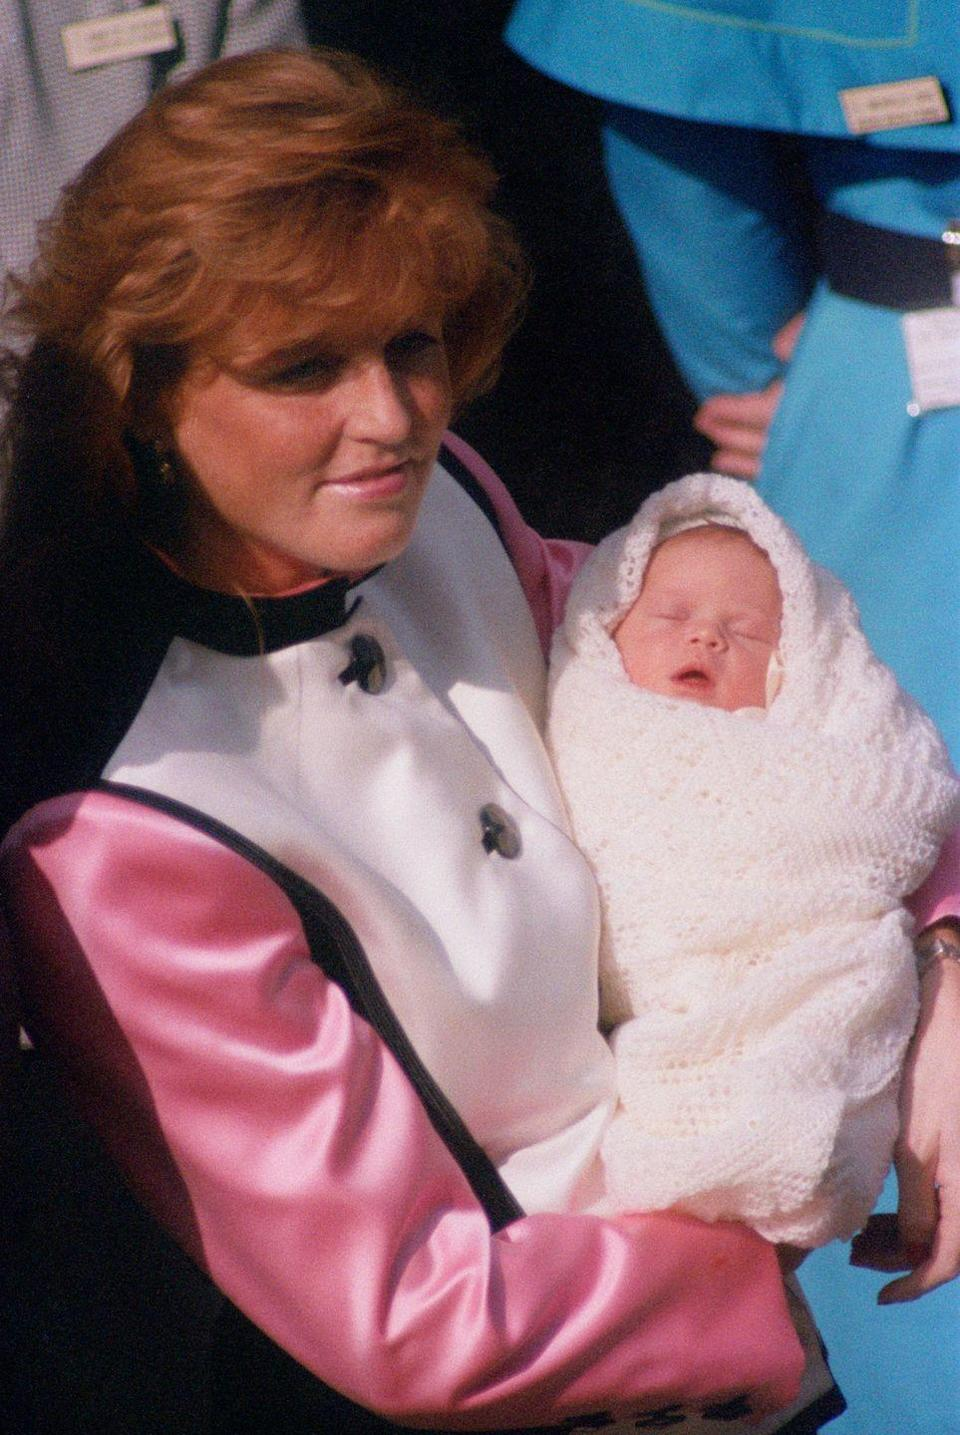 """<p>A newborn Princess Eugenie naps while her mother Sarah, the Duchess of York, cradles her outside the hospital in London. In 2017, Eugenie told <em><a href=""""https://www.harpersbazaar.com/culture/features/a16956/princess-eugenie-of-york-interview/"""" rel=""""nofollow noopener"""" target=""""_blank"""" data-ylk=""""slk:Harper's Bazaar"""" class=""""link rapid-noclick-resp"""">Harper's Bazaar</a></em>, """"What can't I live without? My family. That sounds cheesy, but I really can't. Especially my mum. I wouldn't be able to make tough decisions without her. And my sister. My mum always says that we're the only ones who know exactly what's going on in each other's lives.""""</p>"""